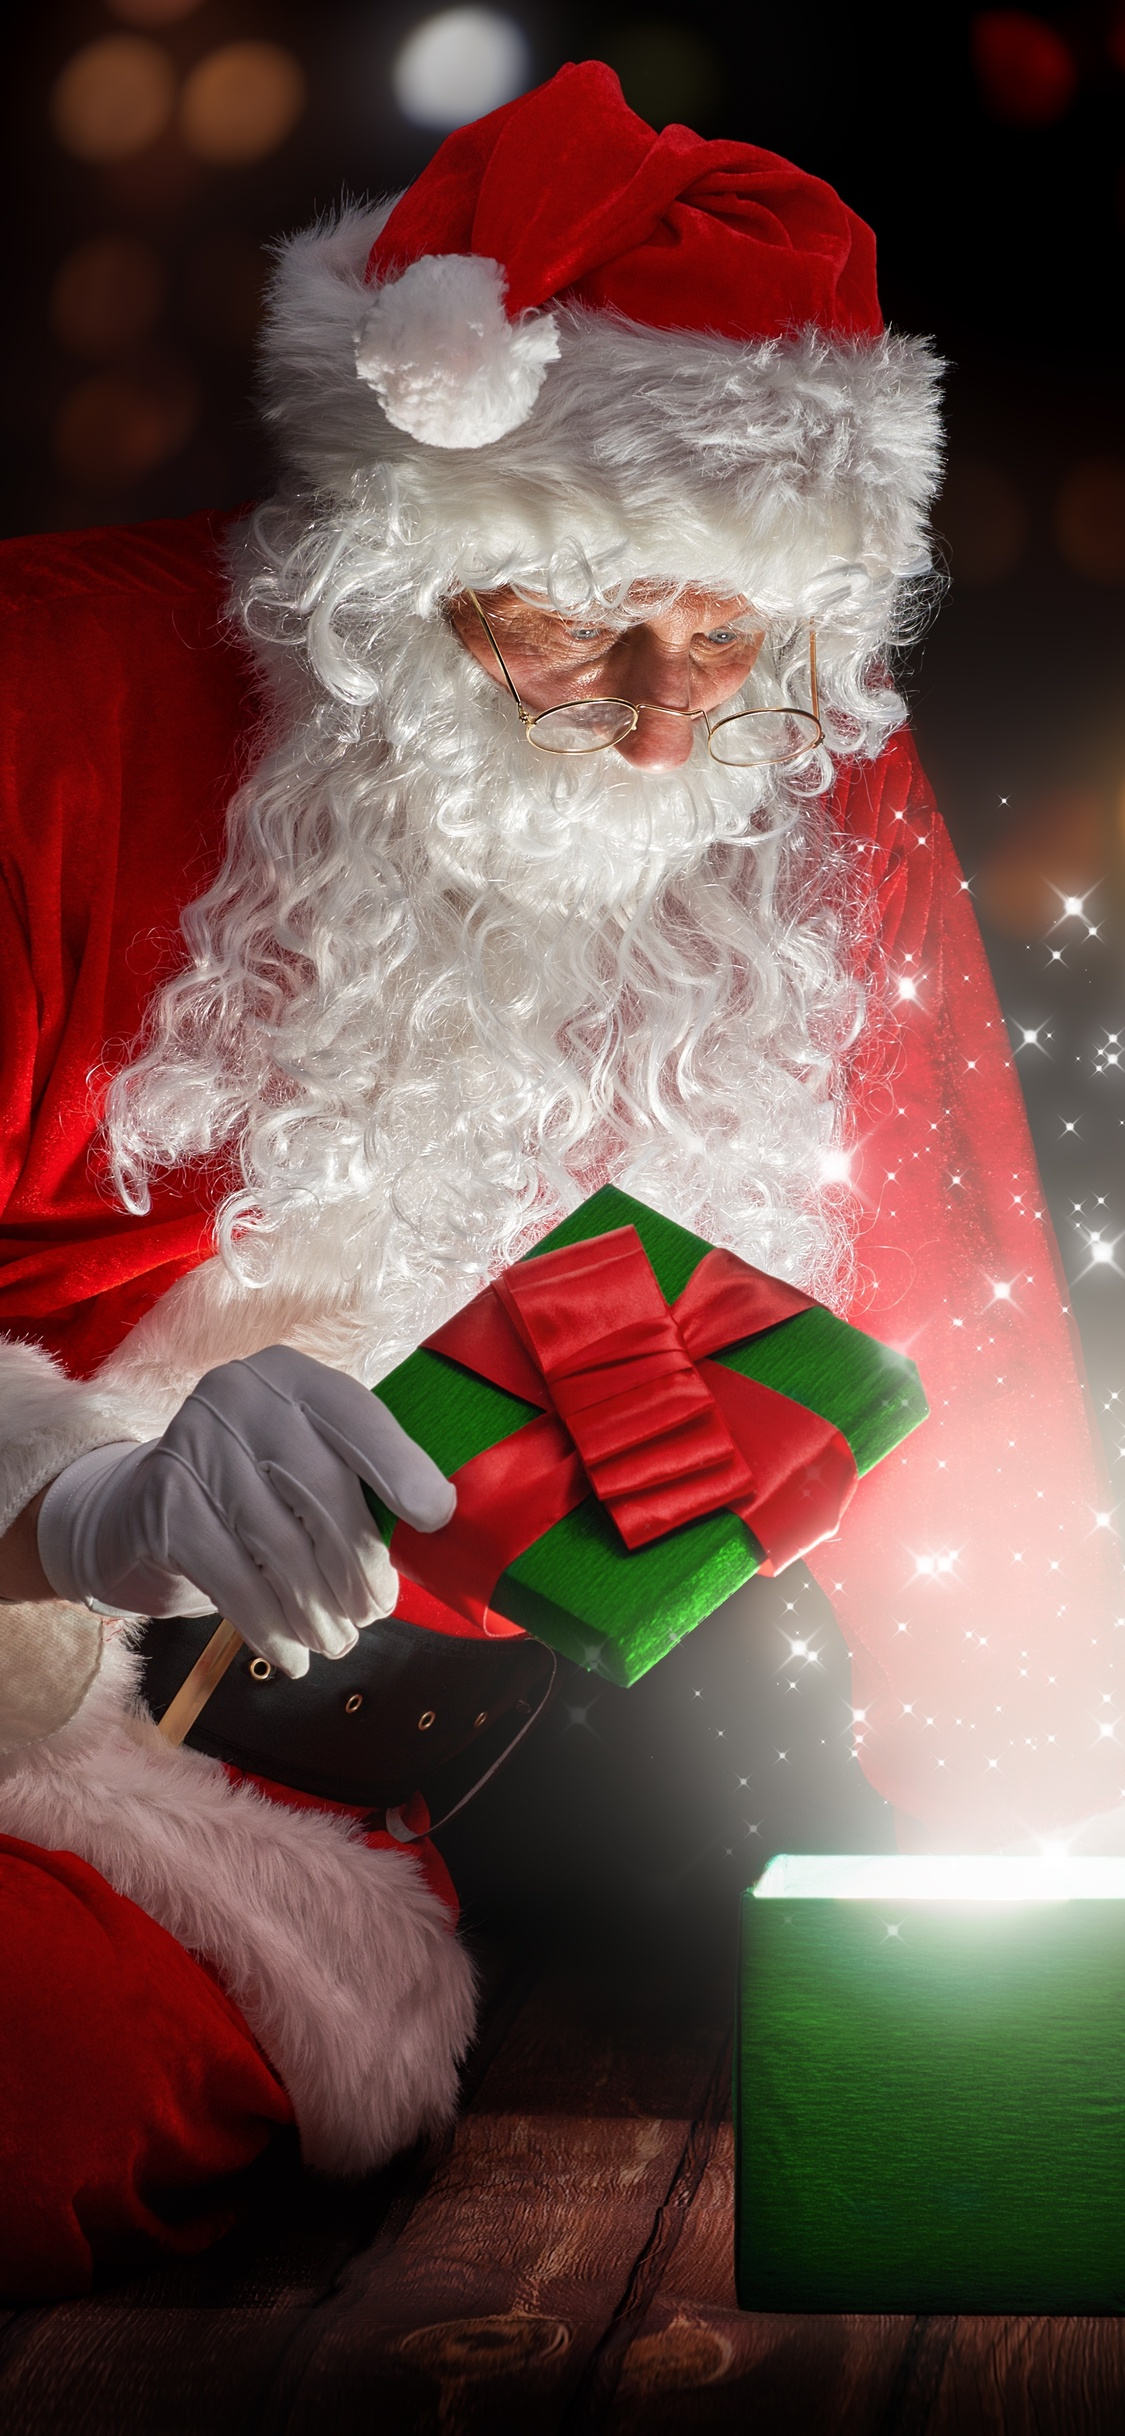 1125x2436 Christmas Santa Claus Opening Gifts Iphone Xs